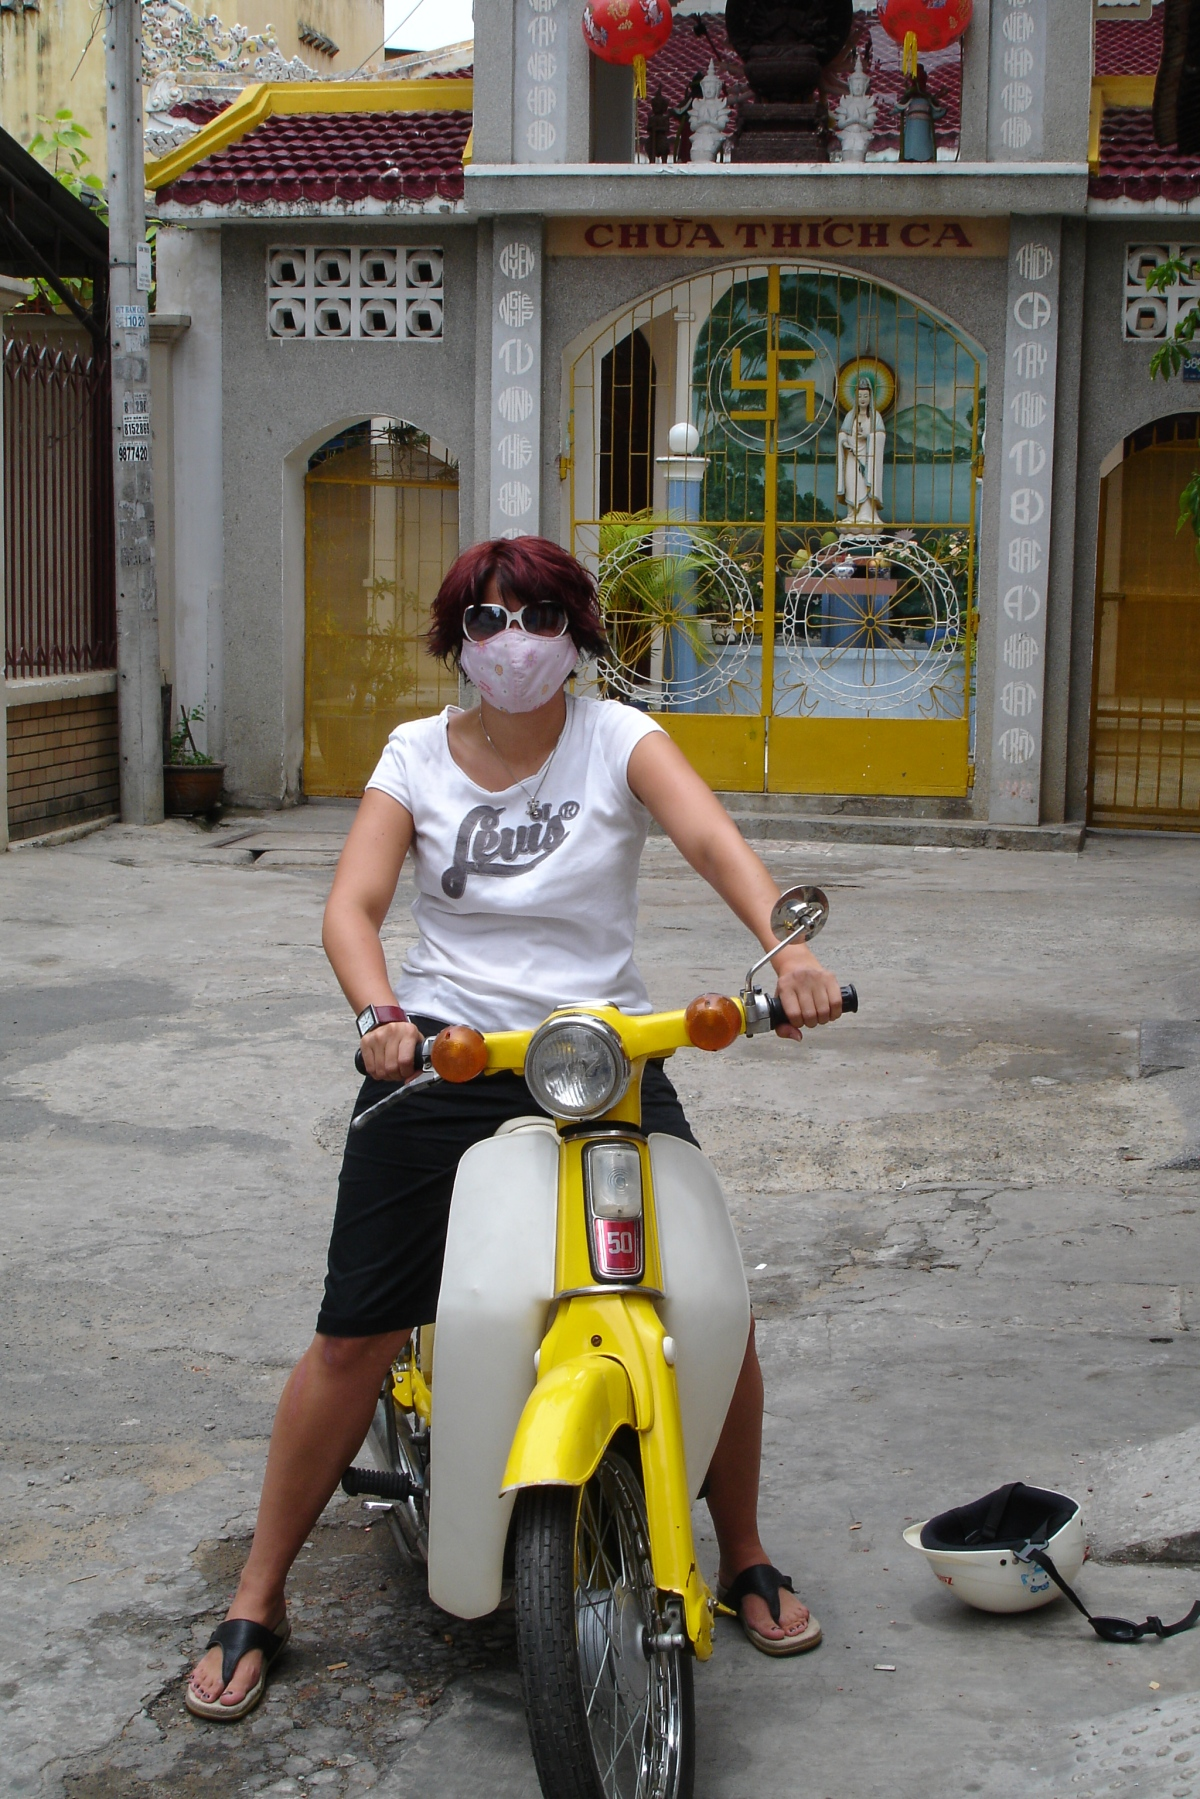 Surviving My 3 Motorbike Accidents in Ho Chi Minh City